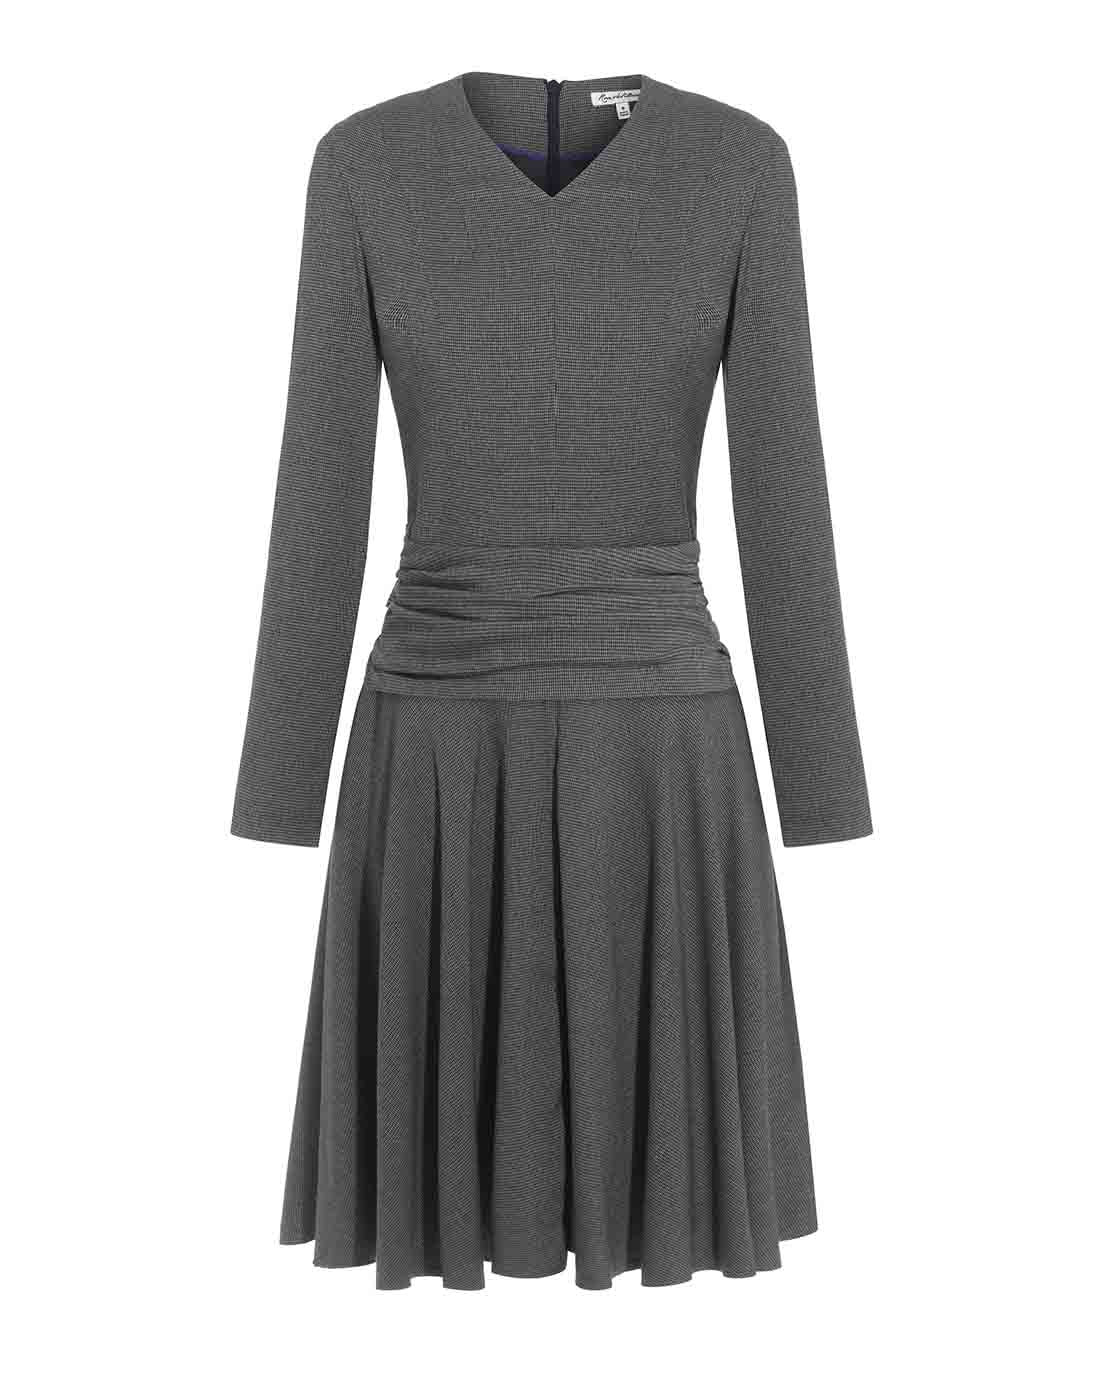 Herringbone flattering fit and flare office dress for work